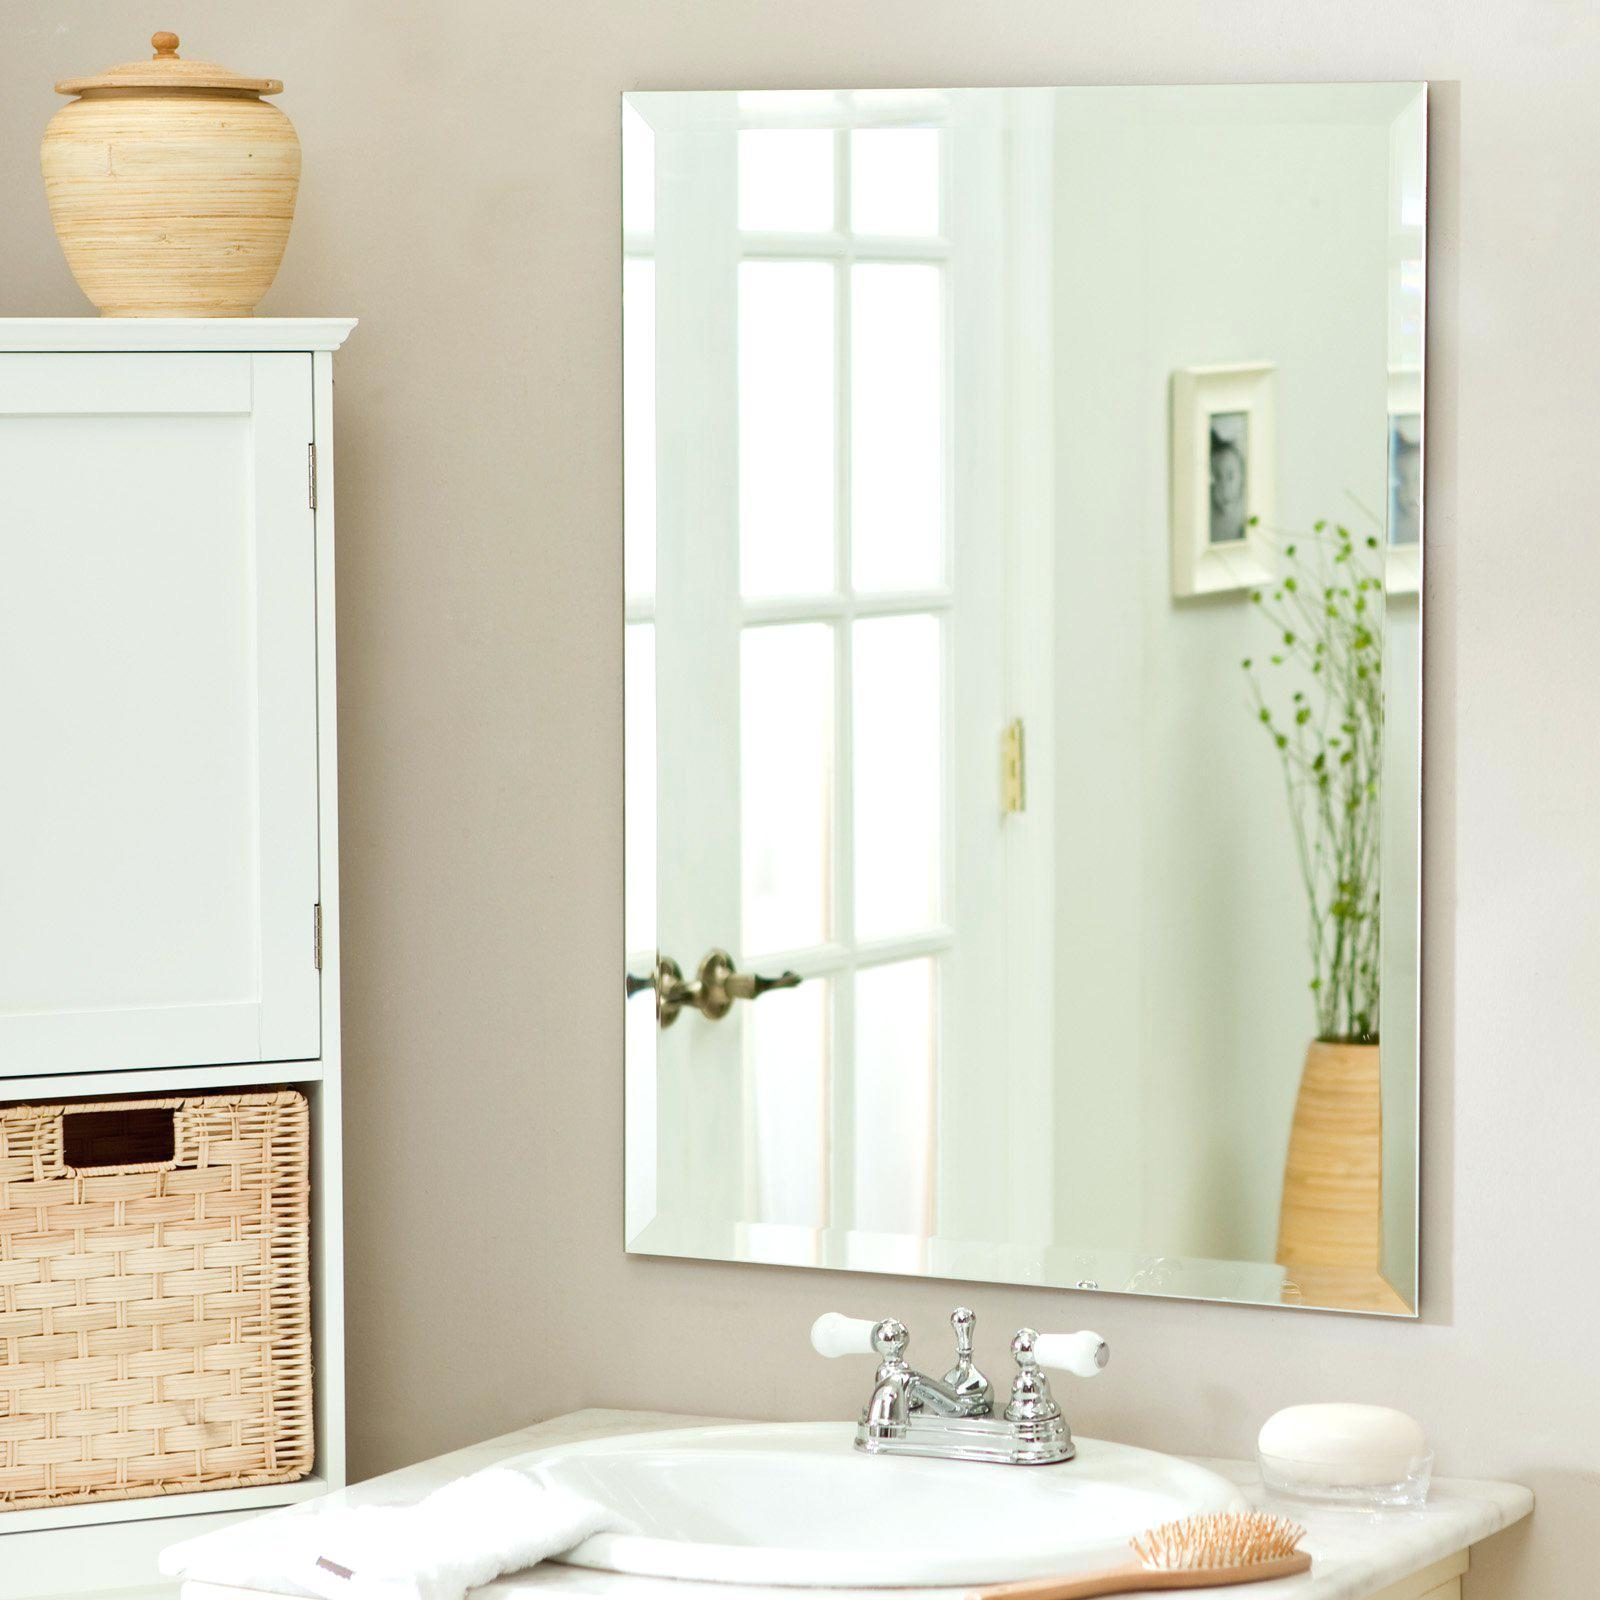 Frameless Wall Mirror For Bathroom Full Length – Shopwiz Throughout Wall Mirror Full Length Frameless (Image 4 of 20)